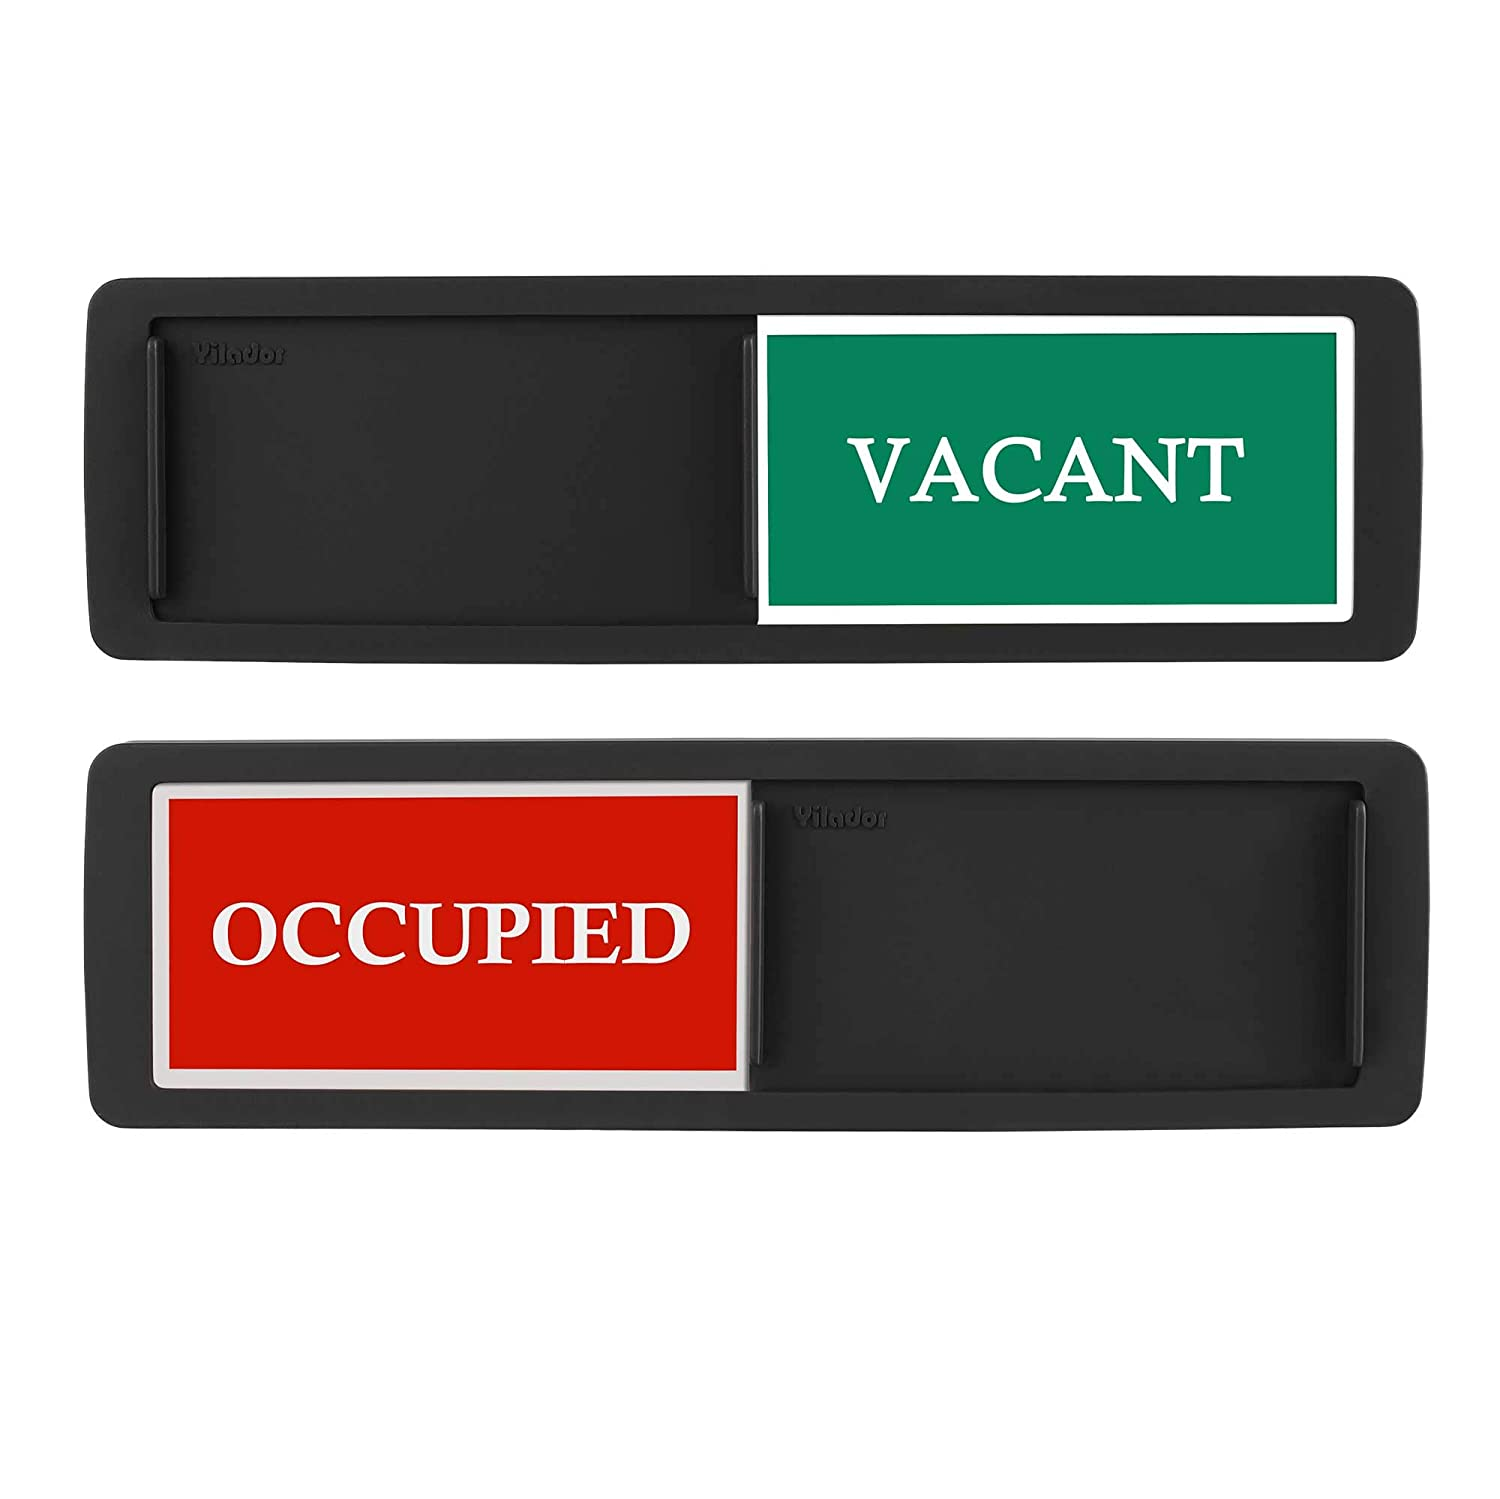 Premium Vacant Occupied Sign for home office Restroom conferenza Hotles ospedale 17,8/ x 5,1/ cm Cruz V2 Fresh Foam Slider porta indicatore se dice Room Vacant o occupati privacy segno